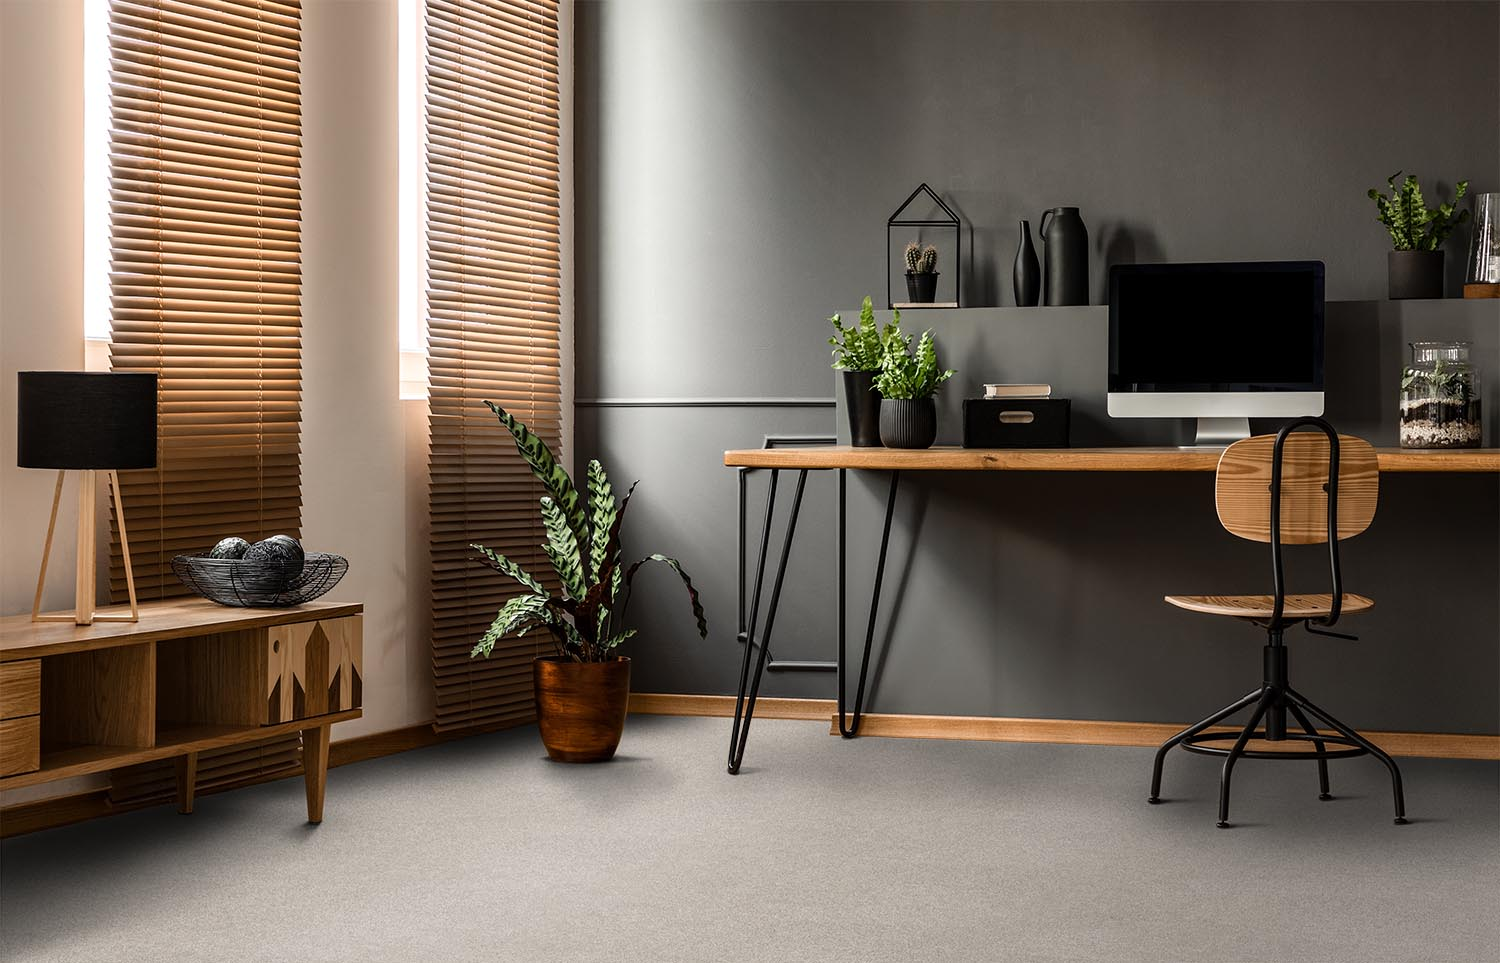 Softology - S201 - Zephyr home office